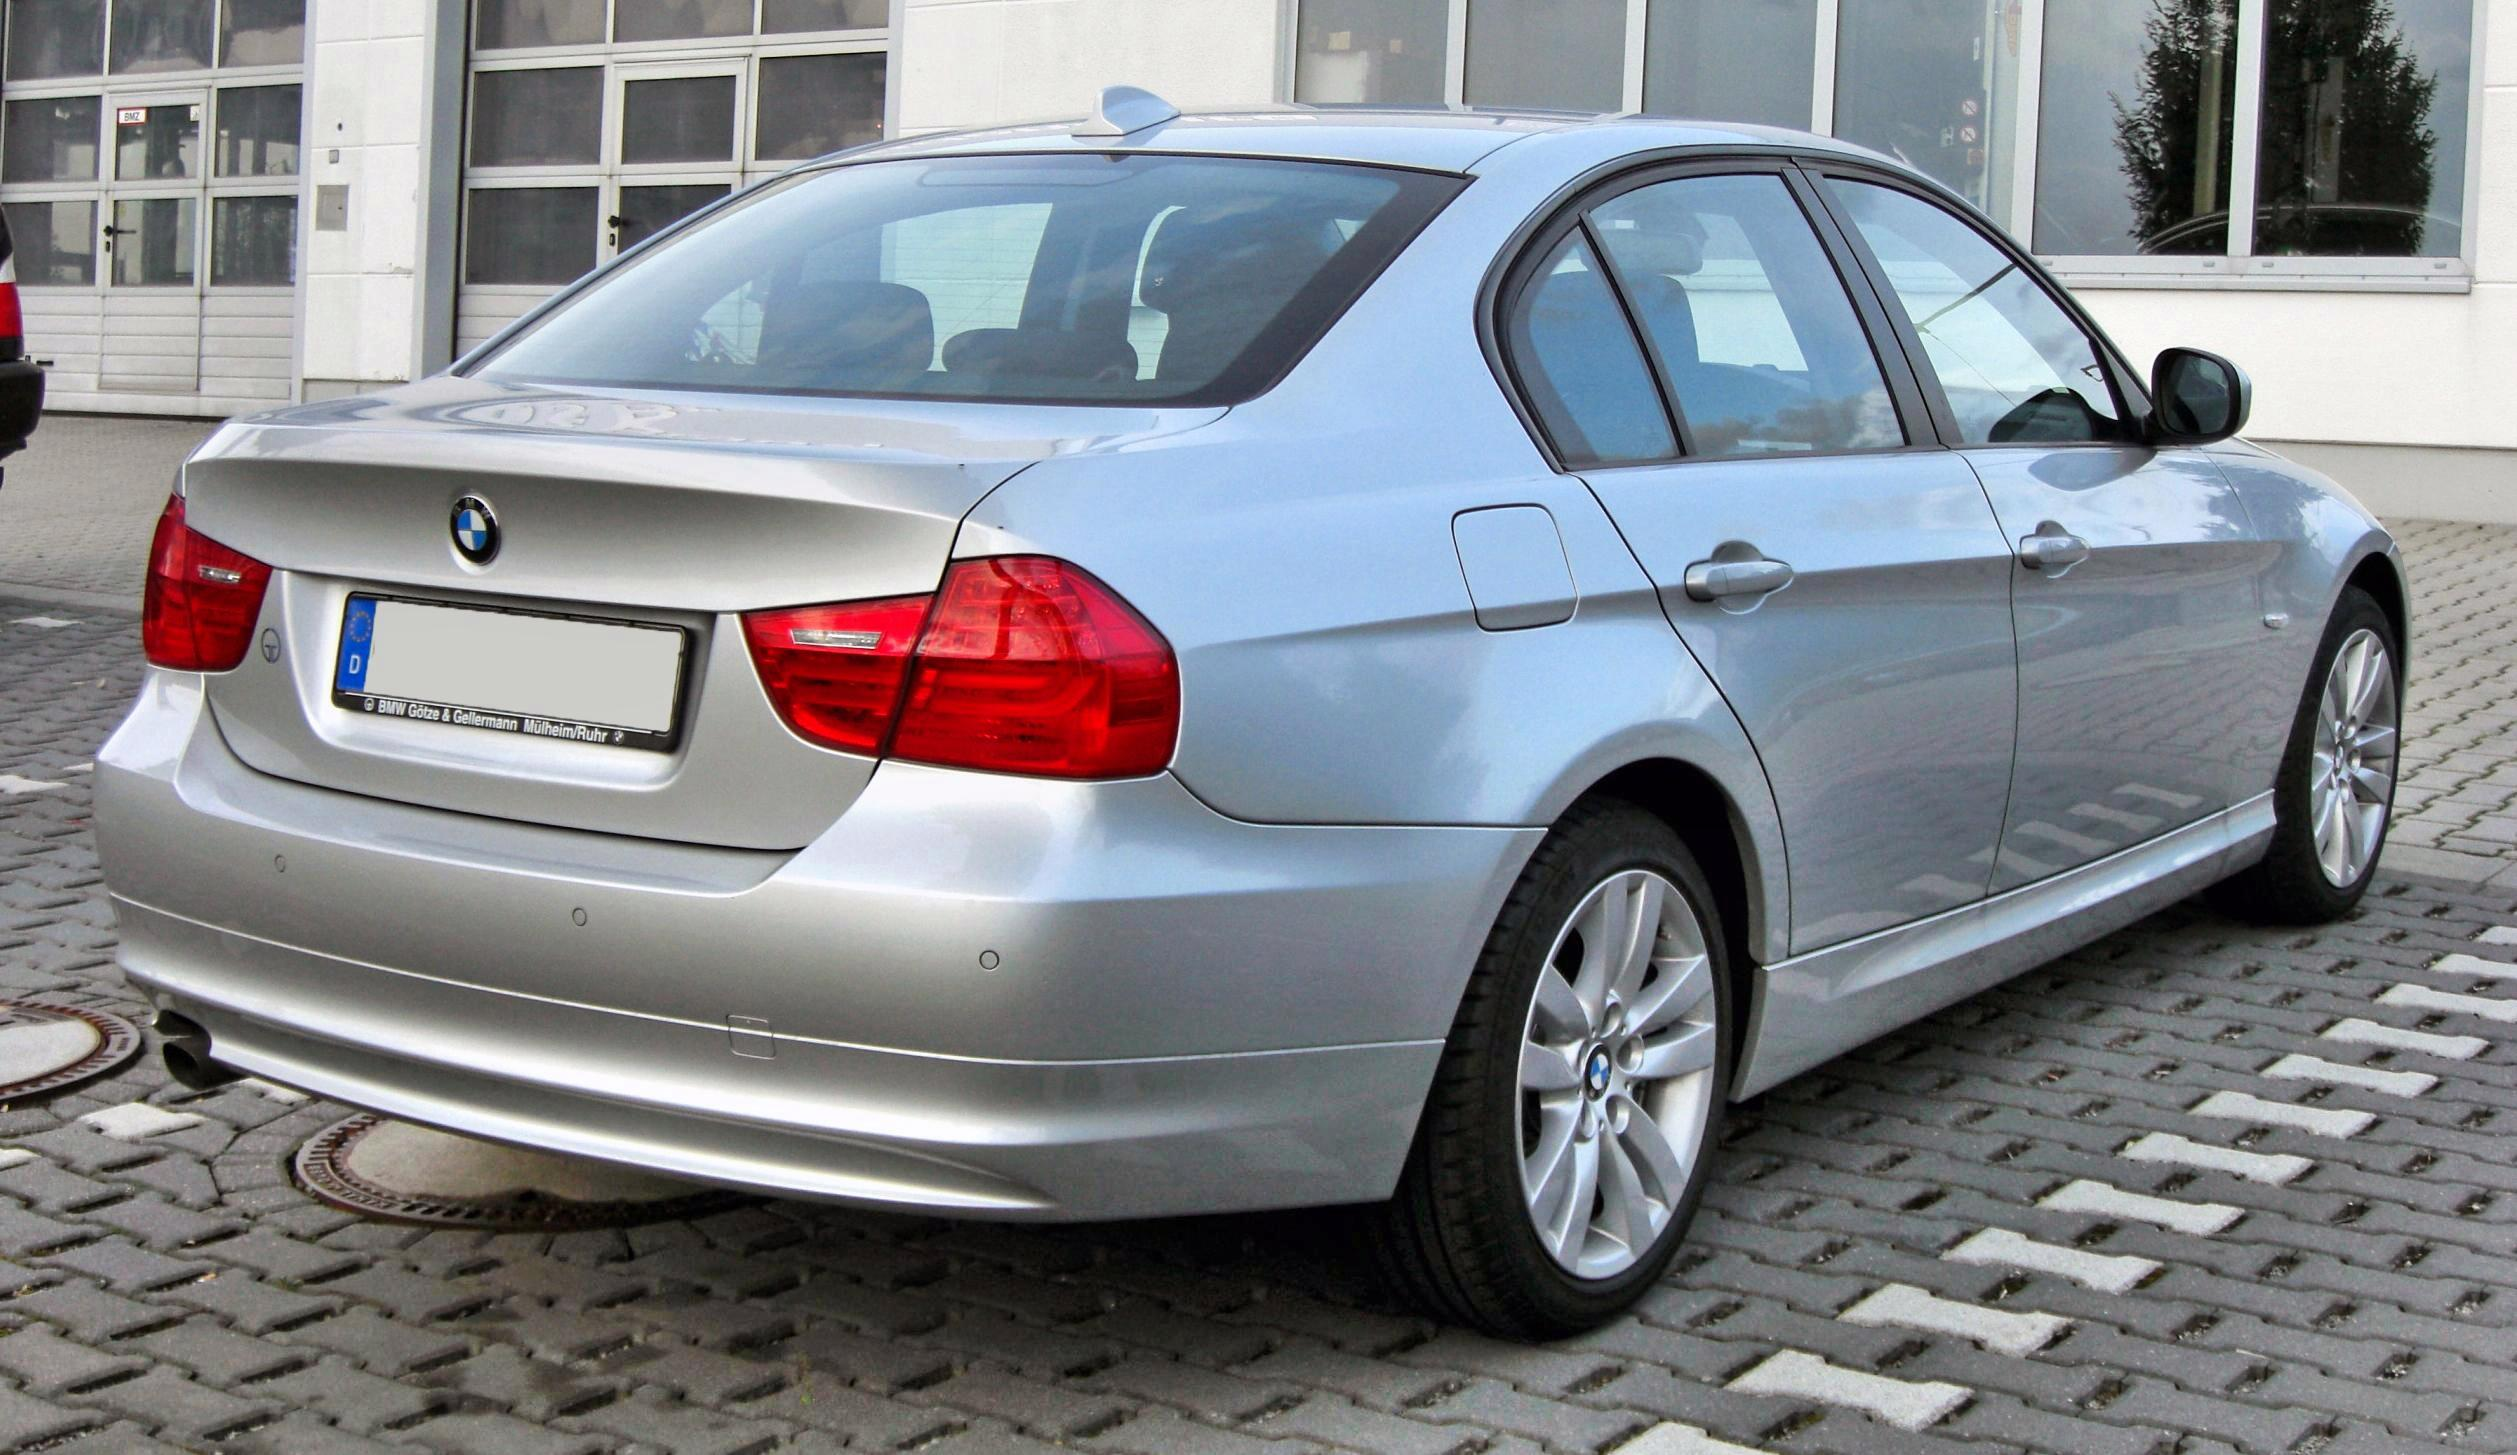 file bmw 3er e90 facelift 20090720 rear jpg wikimedia commons. Black Bedroom Furniture Sets. Home Design Ideas